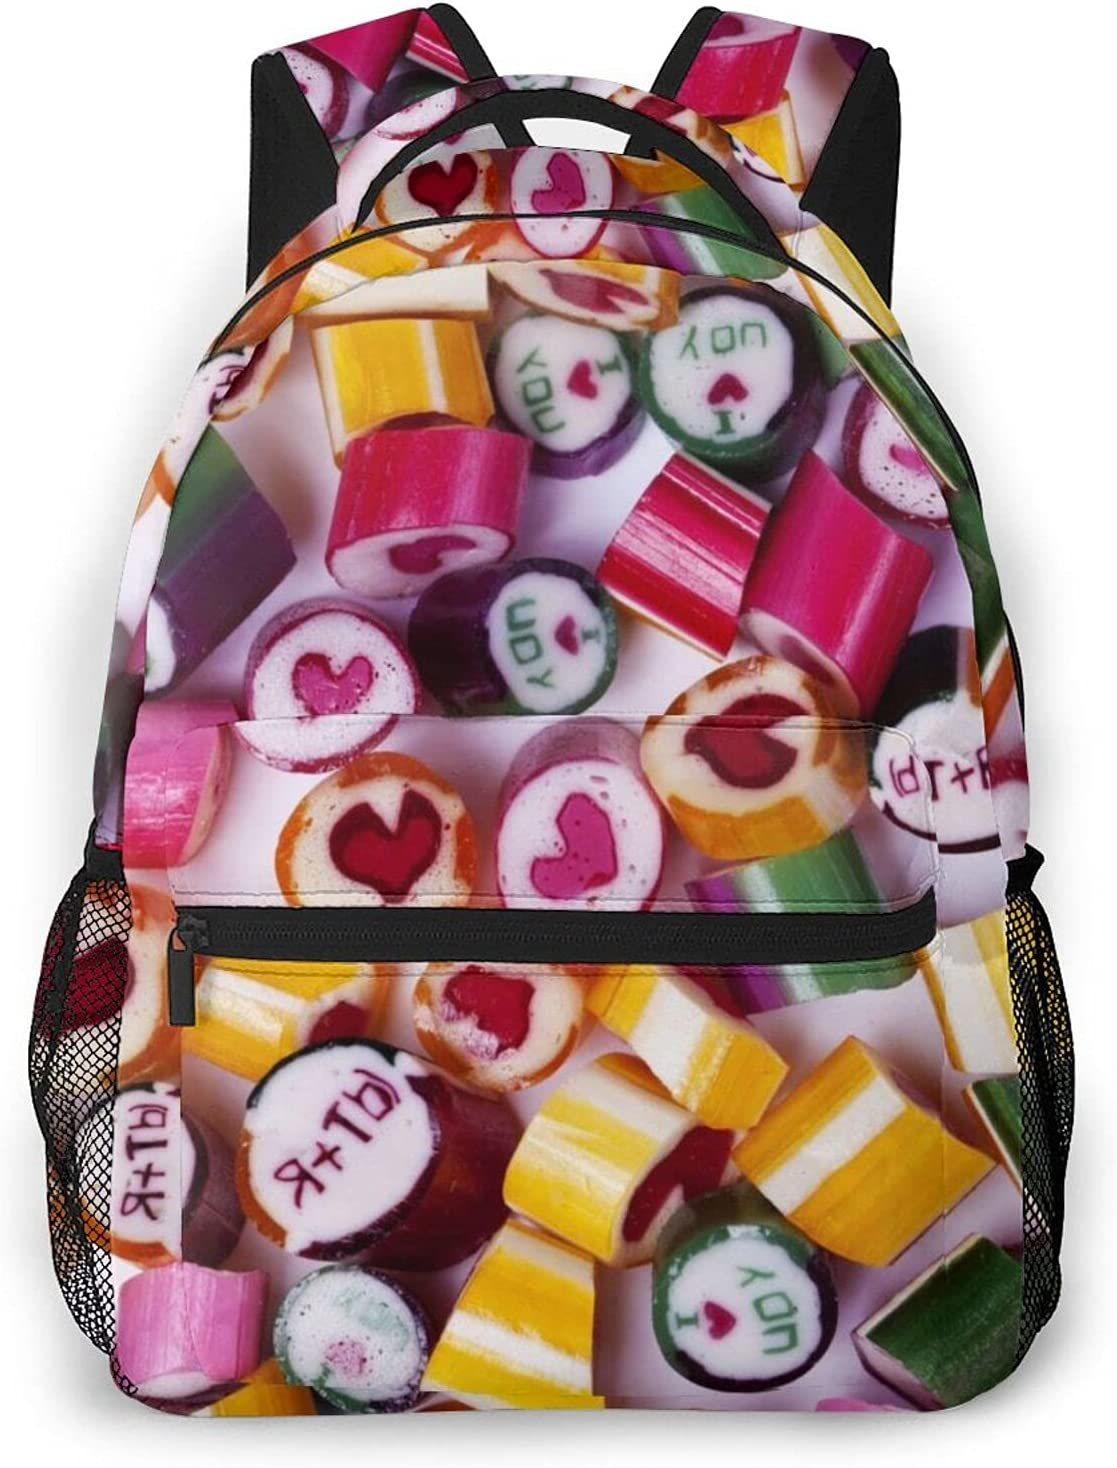 Diy Personalized 1 year warranty Sweets Lightweight Casual Suitable Fo Backpack 40% OFF Cheap Sale